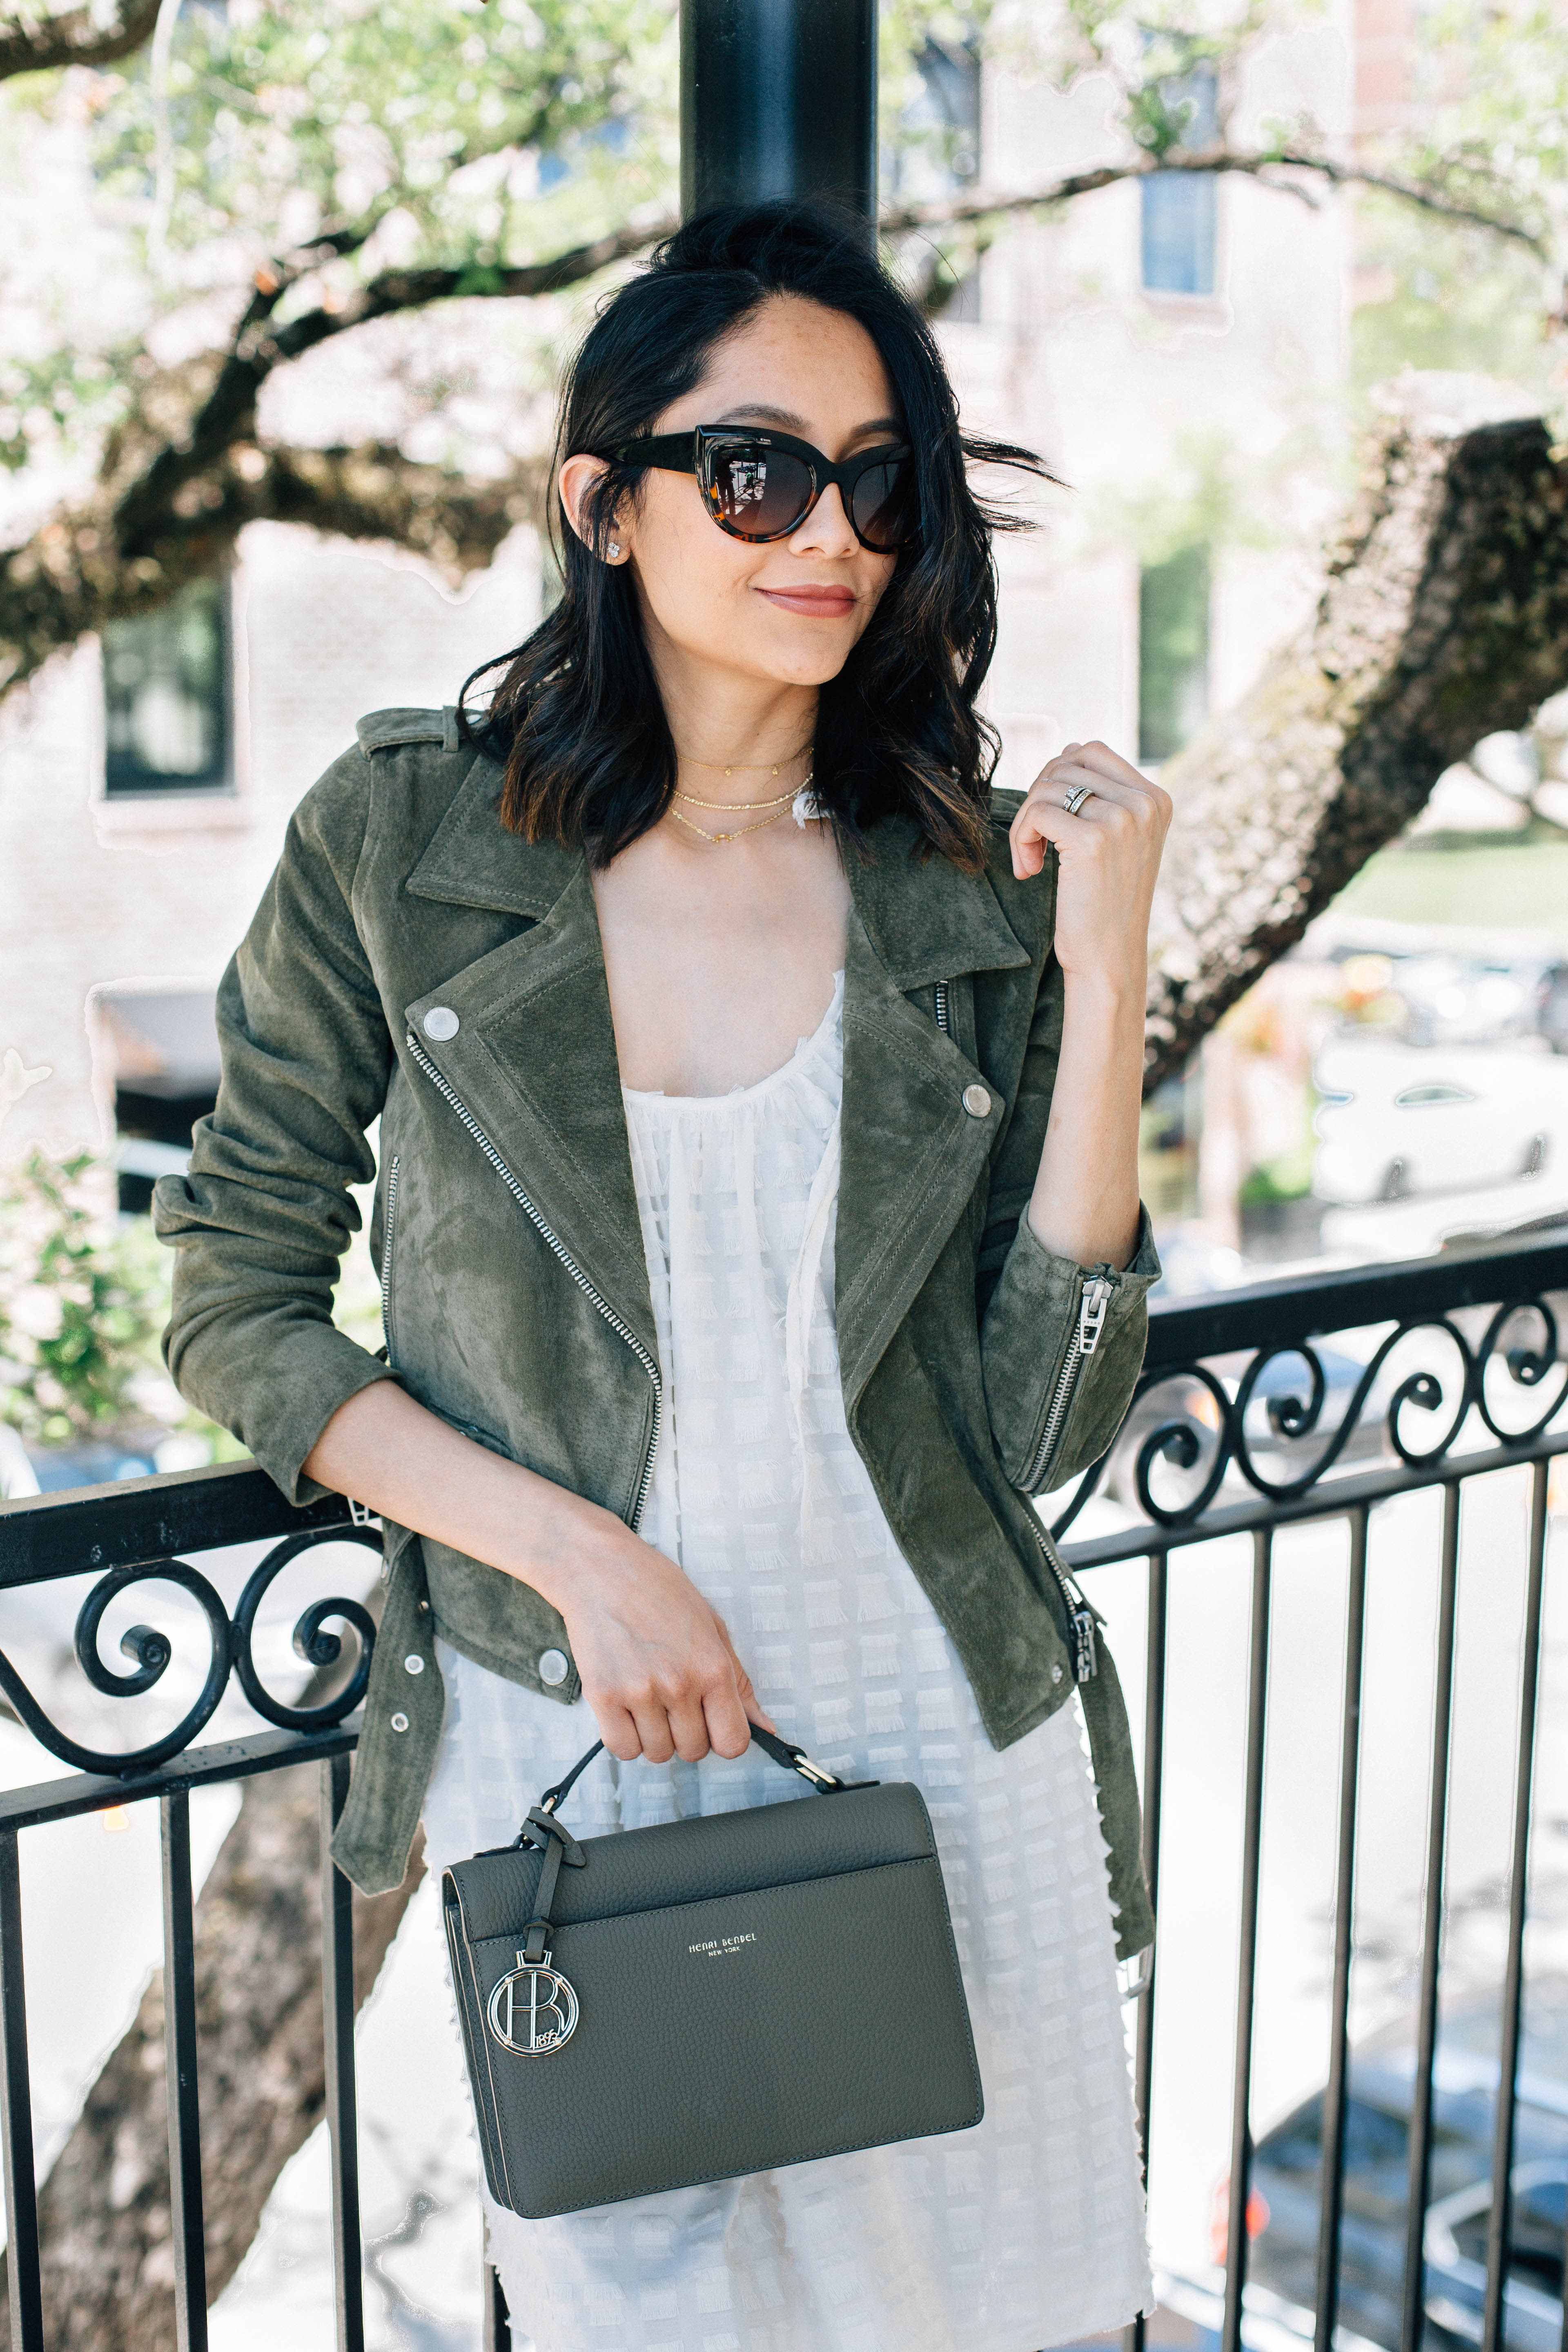 Lifestyle blogger Lilly Beltran of Daily Craving wearing a suede motto jacket and Henri Bendel Bag